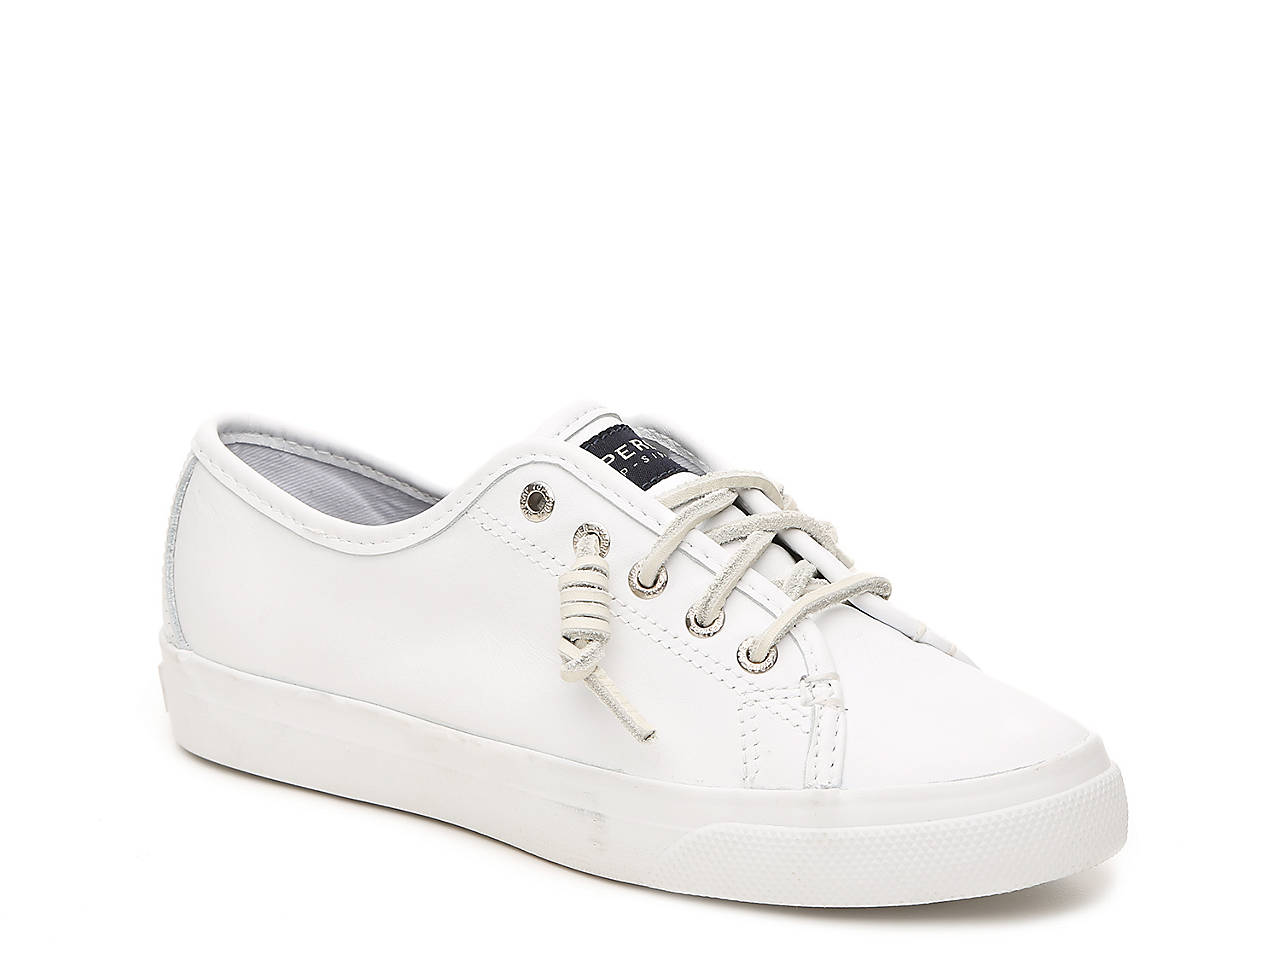 2956cf232f Sperry Top-Sider Pier View Leather Slip-On Sneaker Women s Shoes